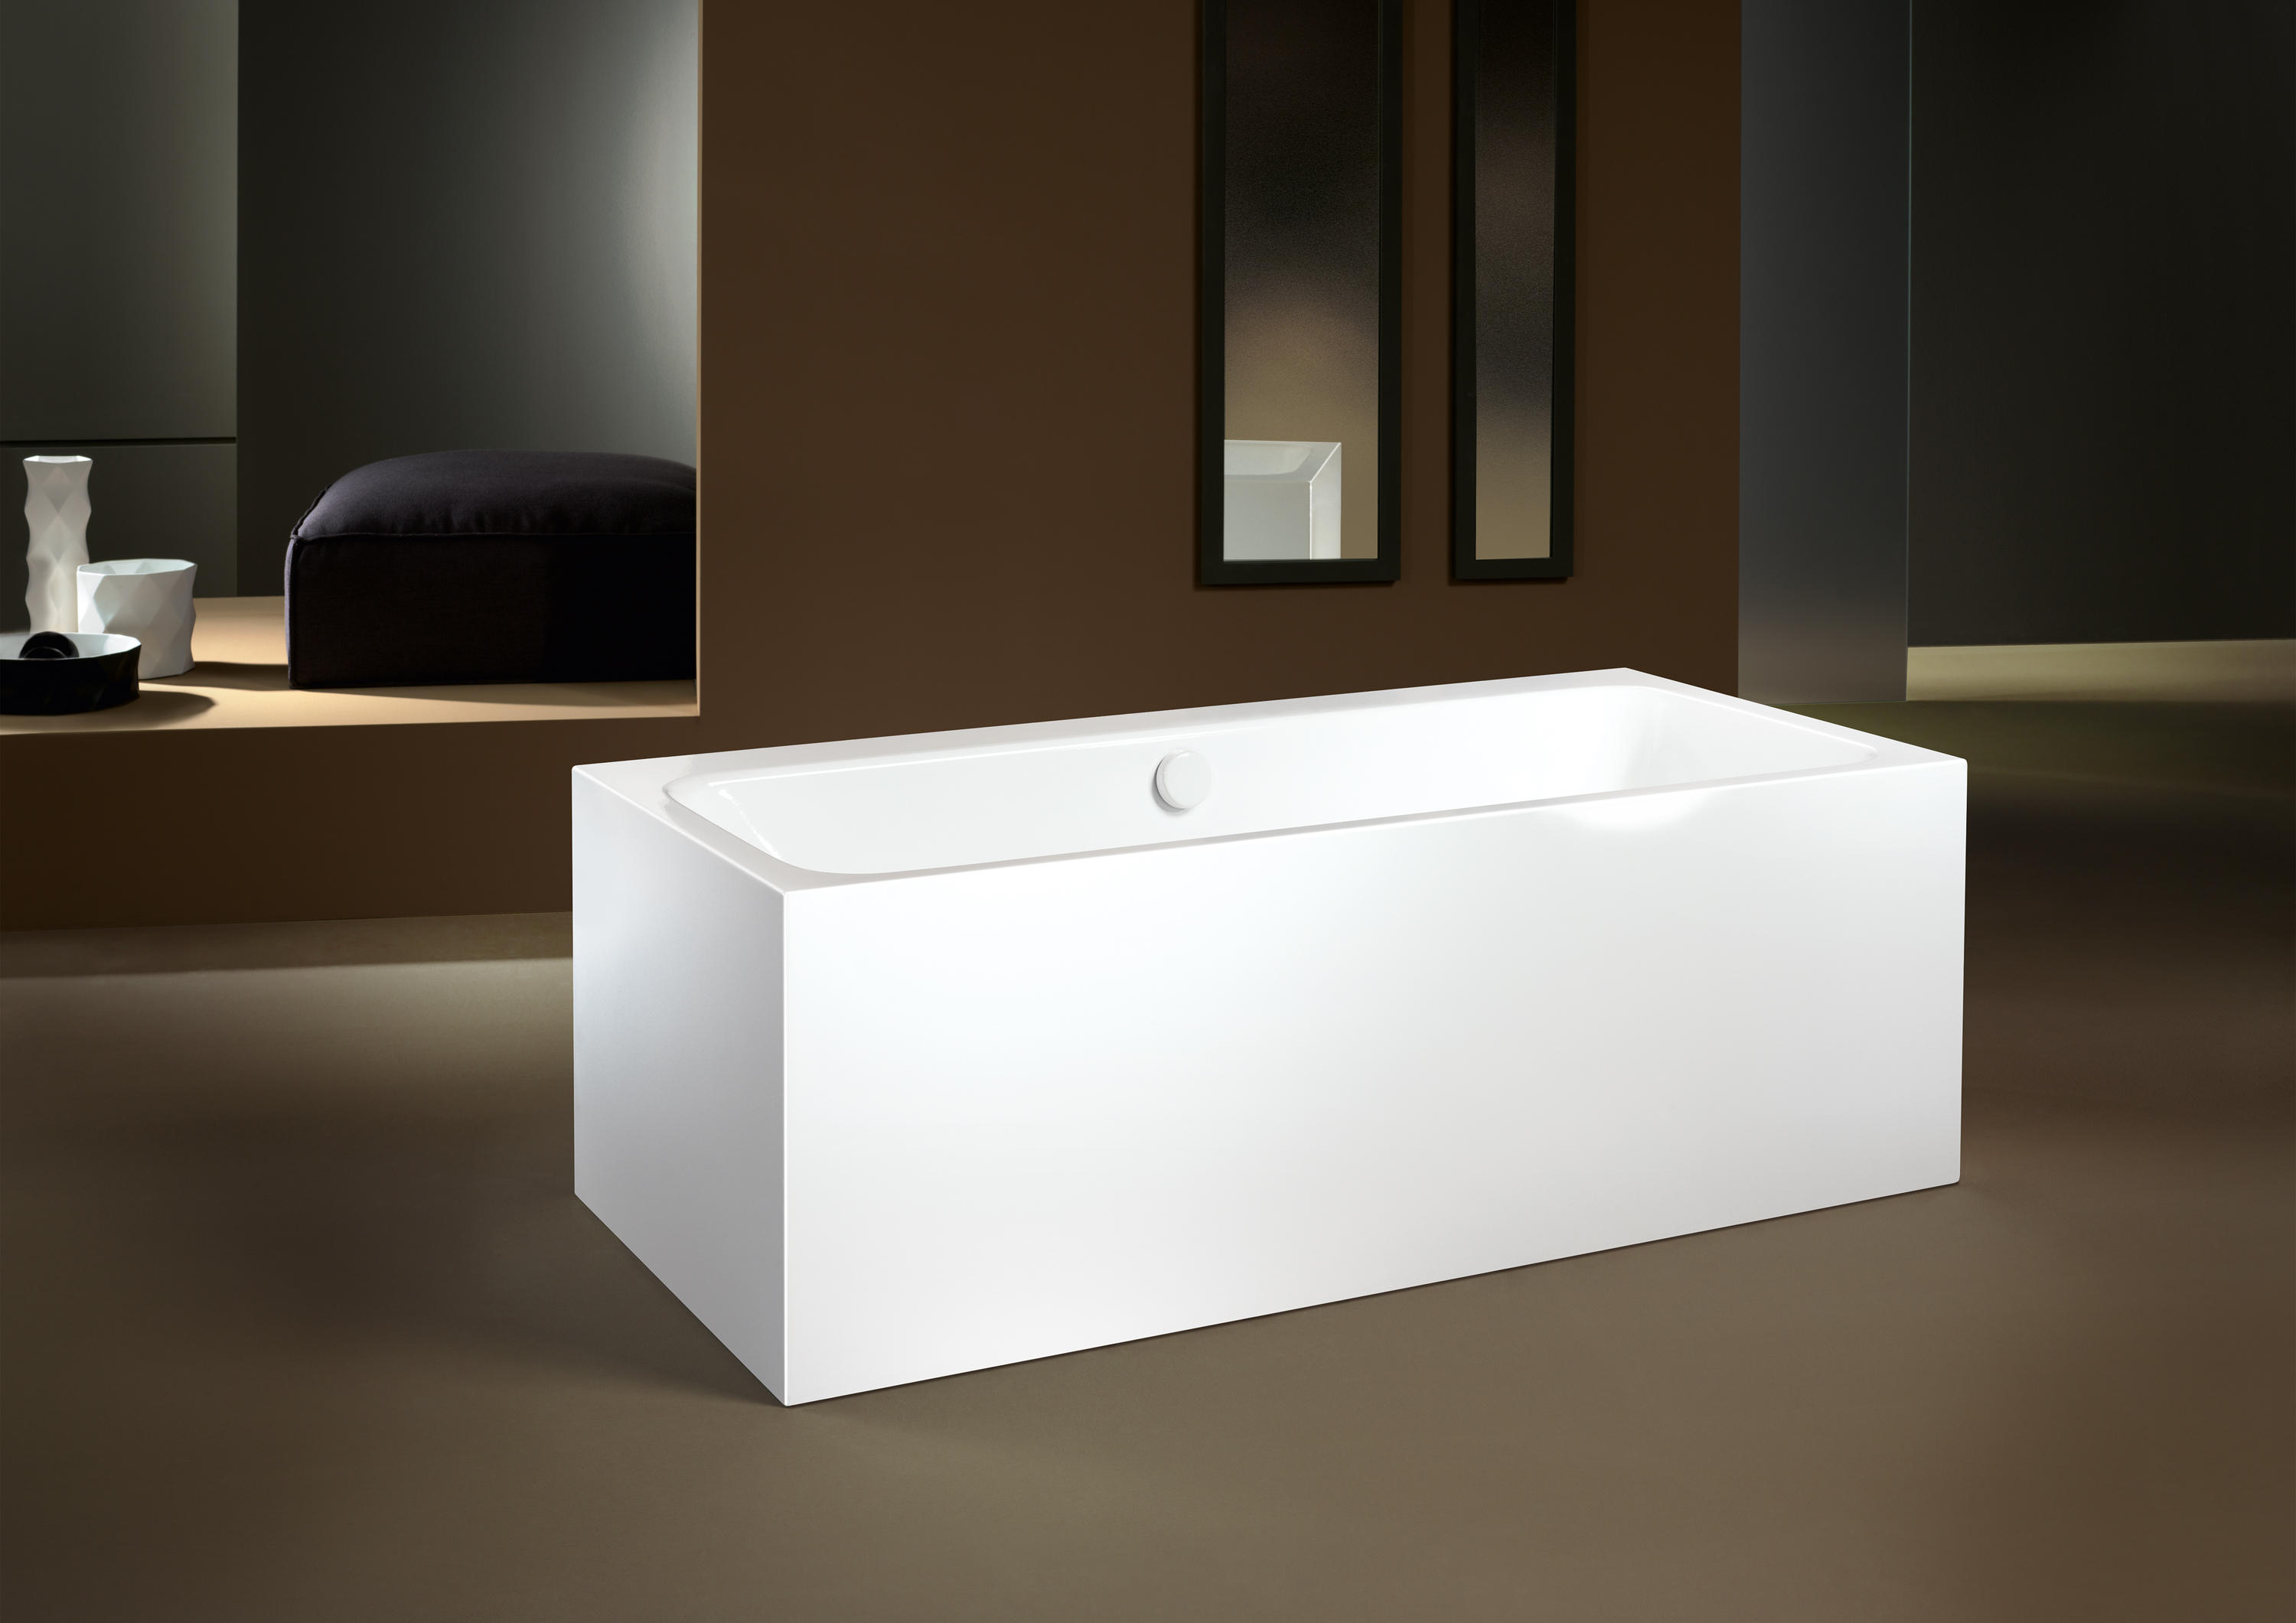 meisterst ck centro duo free standing baths from. Black Bedroom Furniture Sets. Home Design Ideas